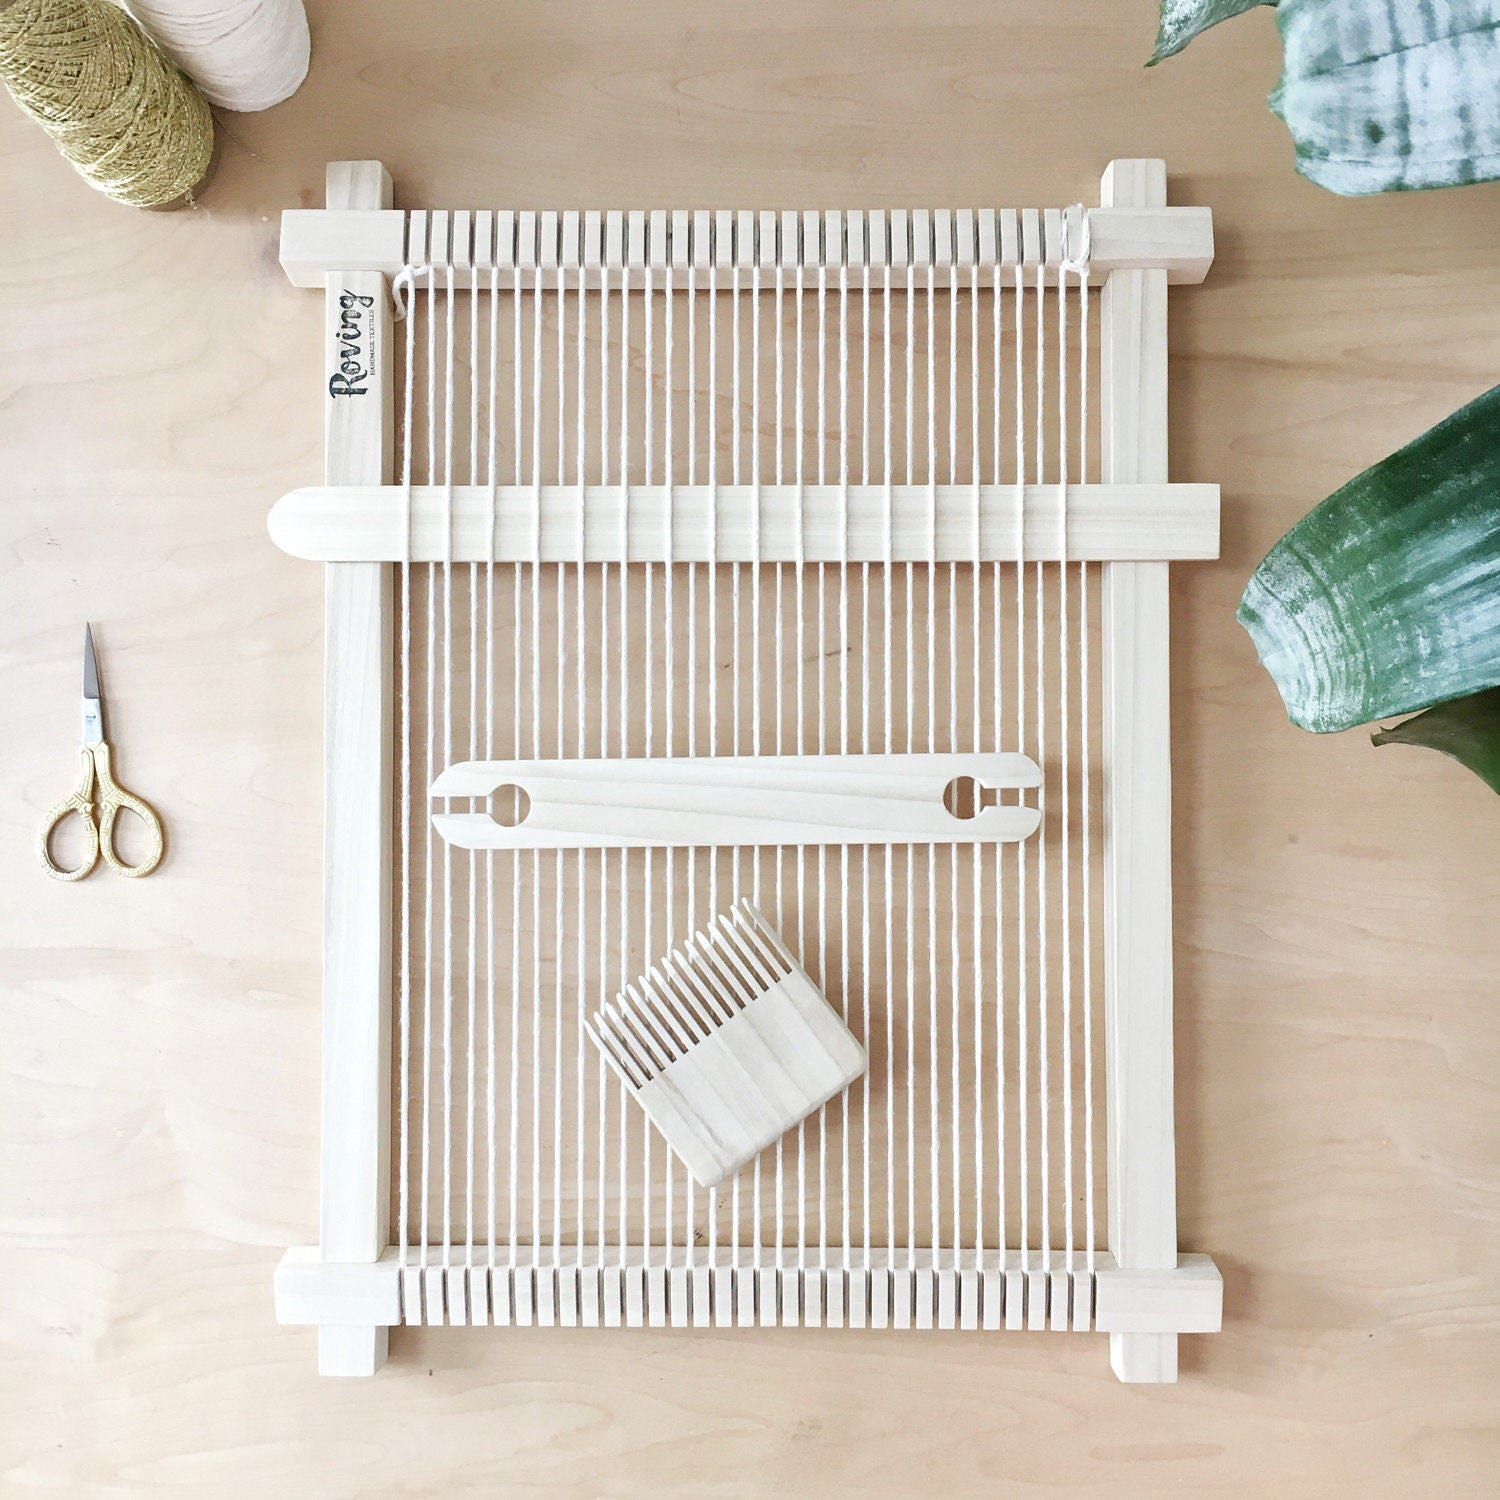 weaving loom kit lap loom hand weaving wall hanging frame loom